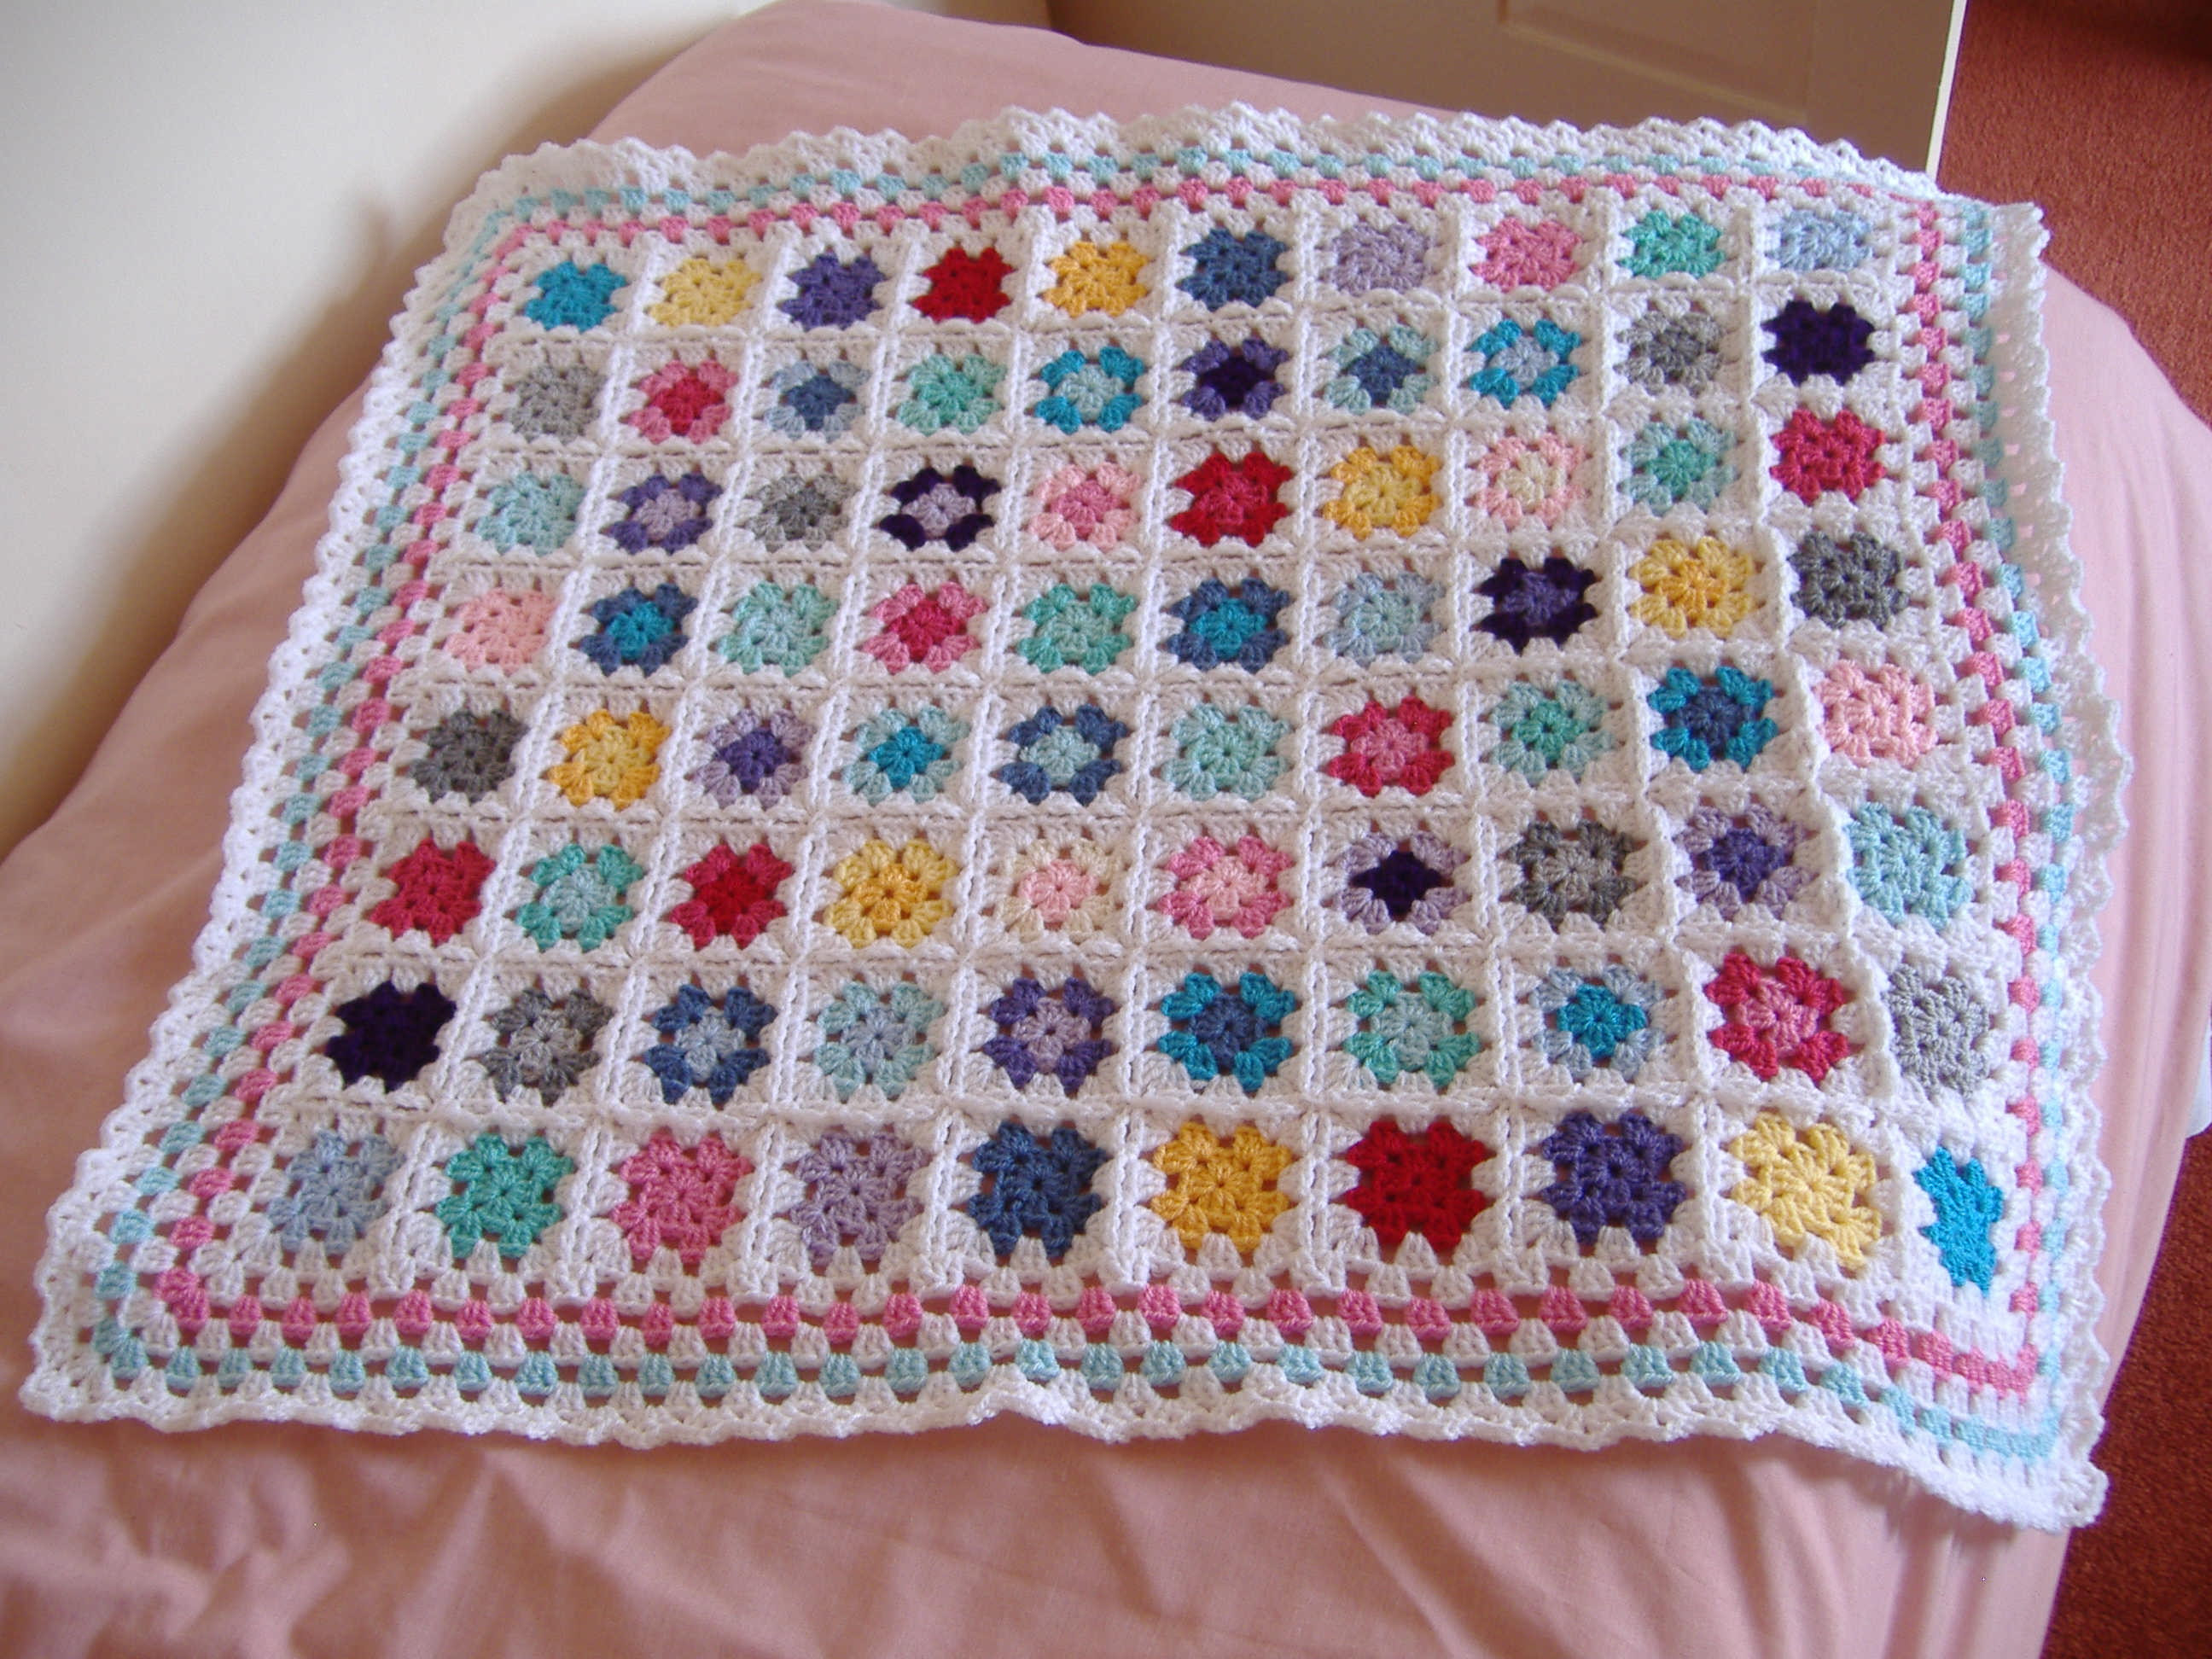 Fresh Free Crochet Patterns for Granny Square Baby Blankets Crochet Square Blanket Patterns Of Lovely 43 Pictures Crochet Square Blanket Patterns